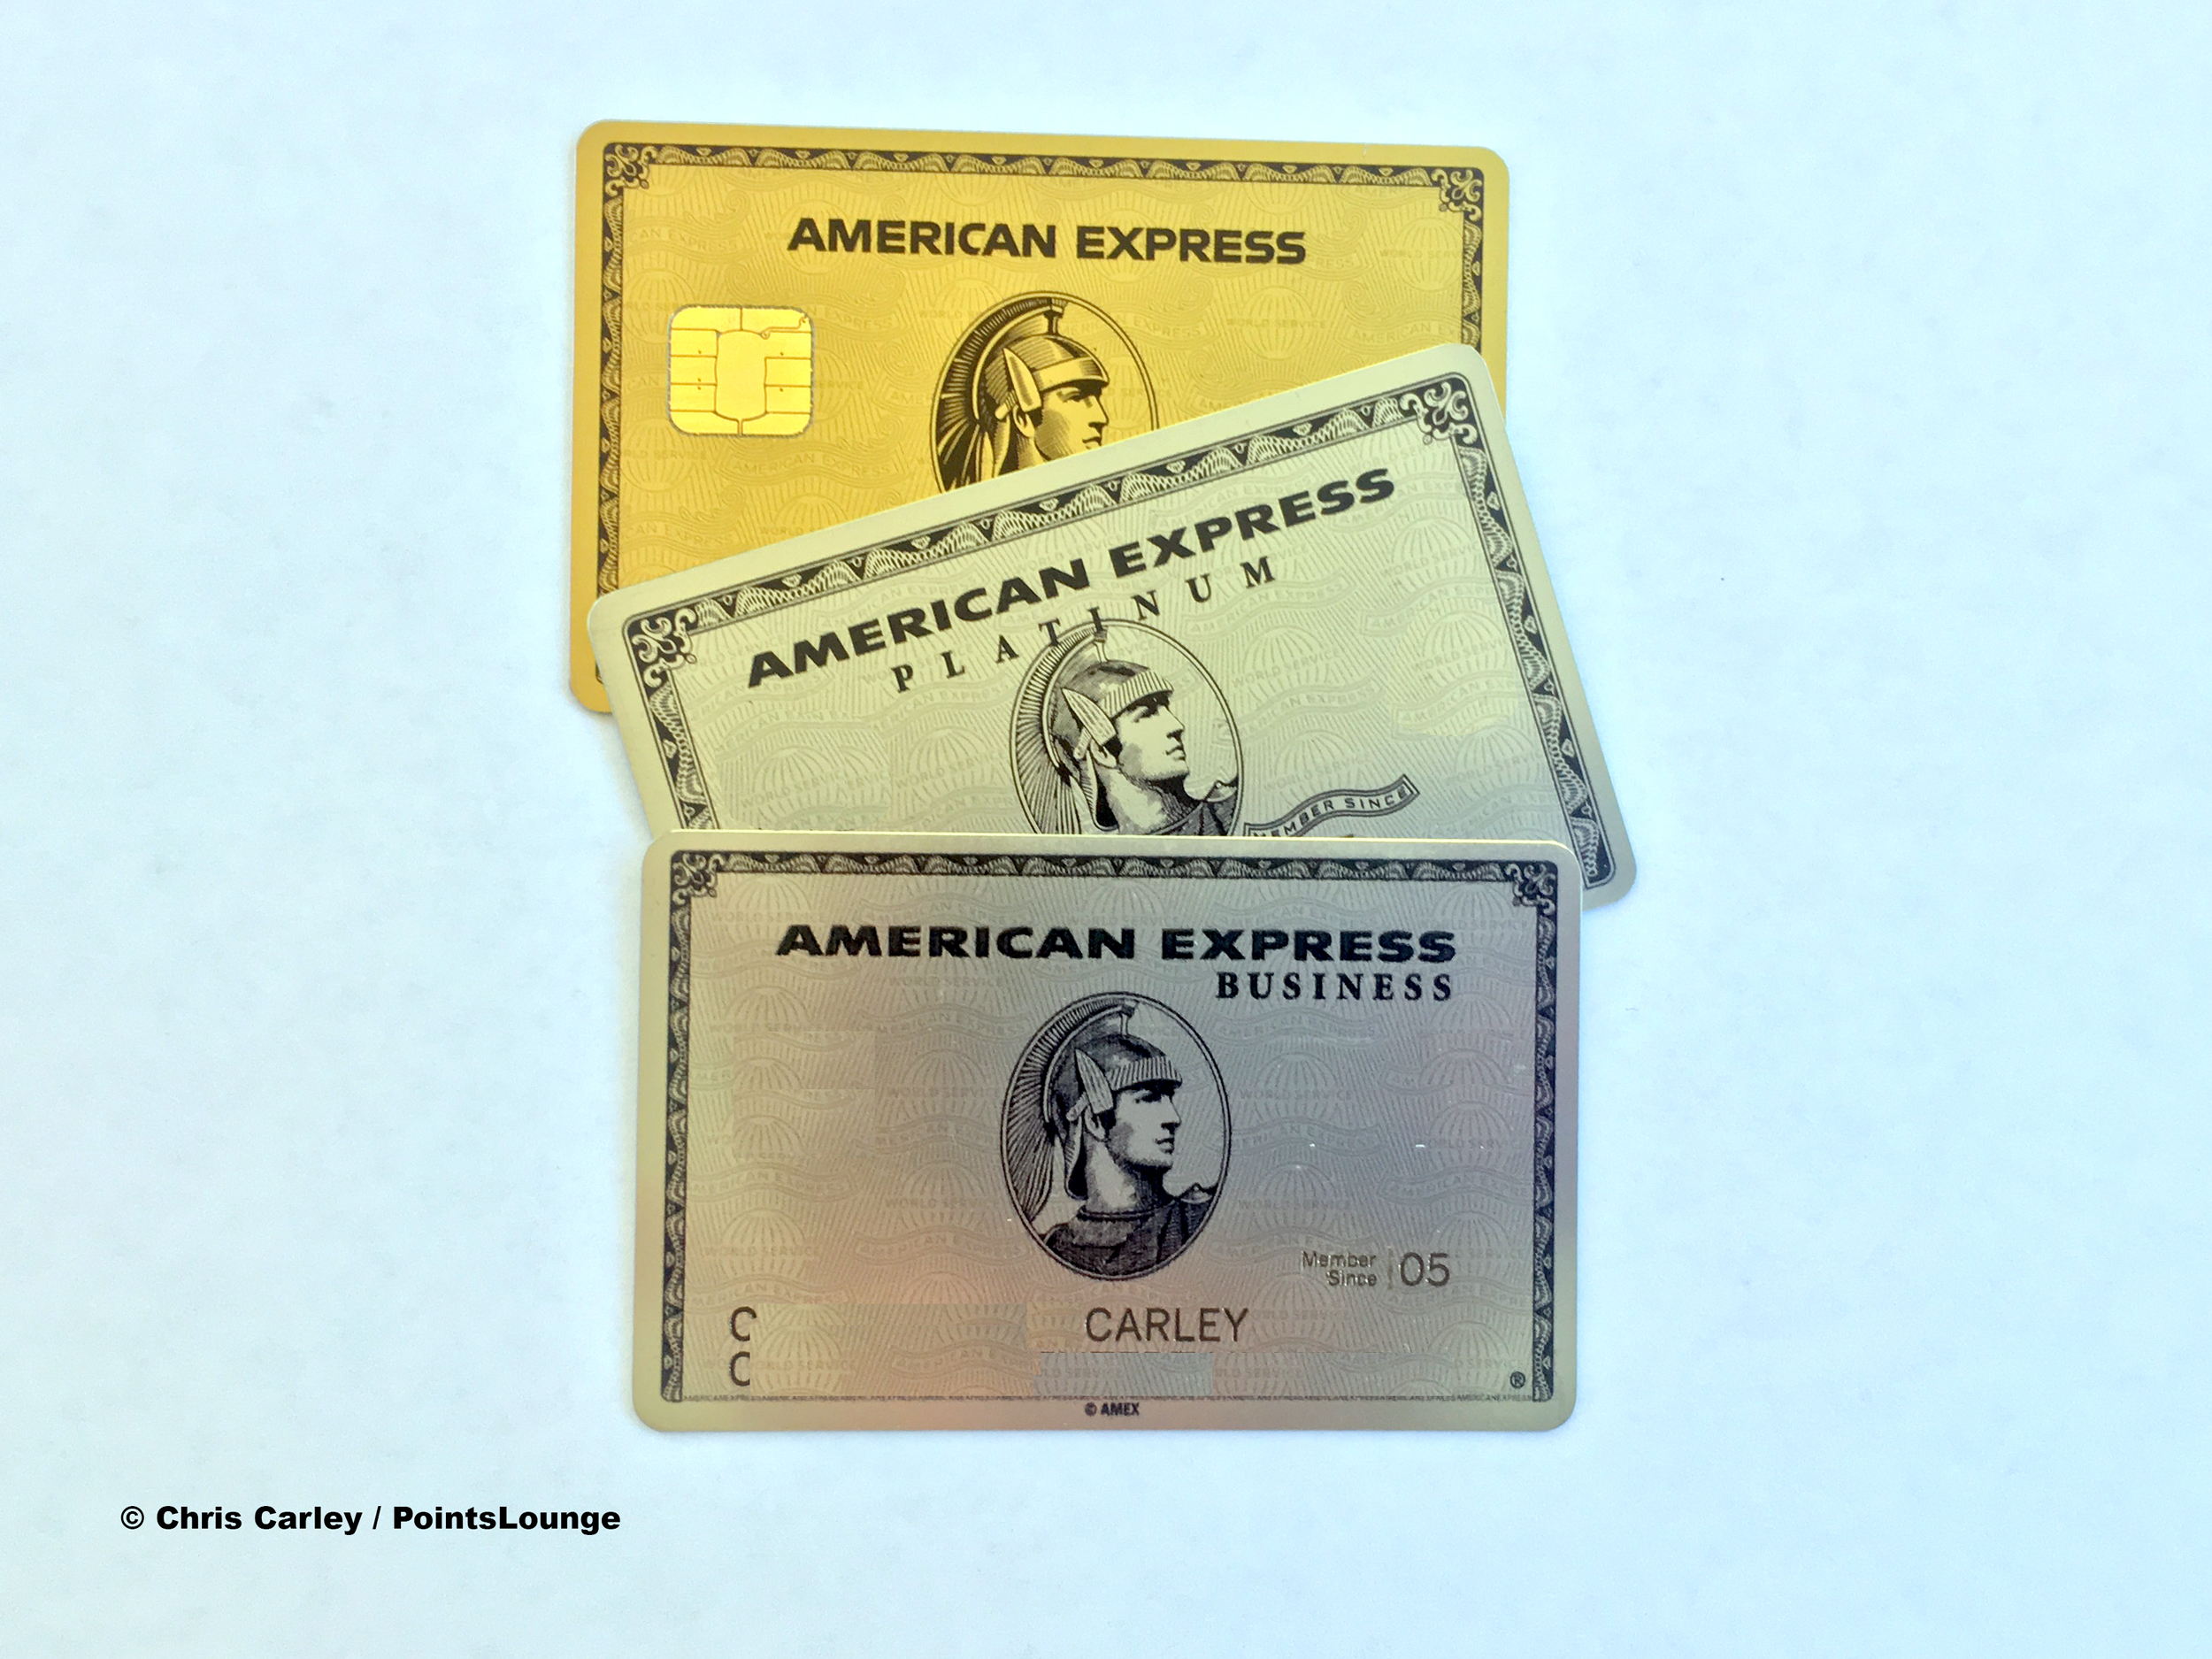 Late Paying Your Amex Bill? Expect to Forfeit Membership Rewards Points!